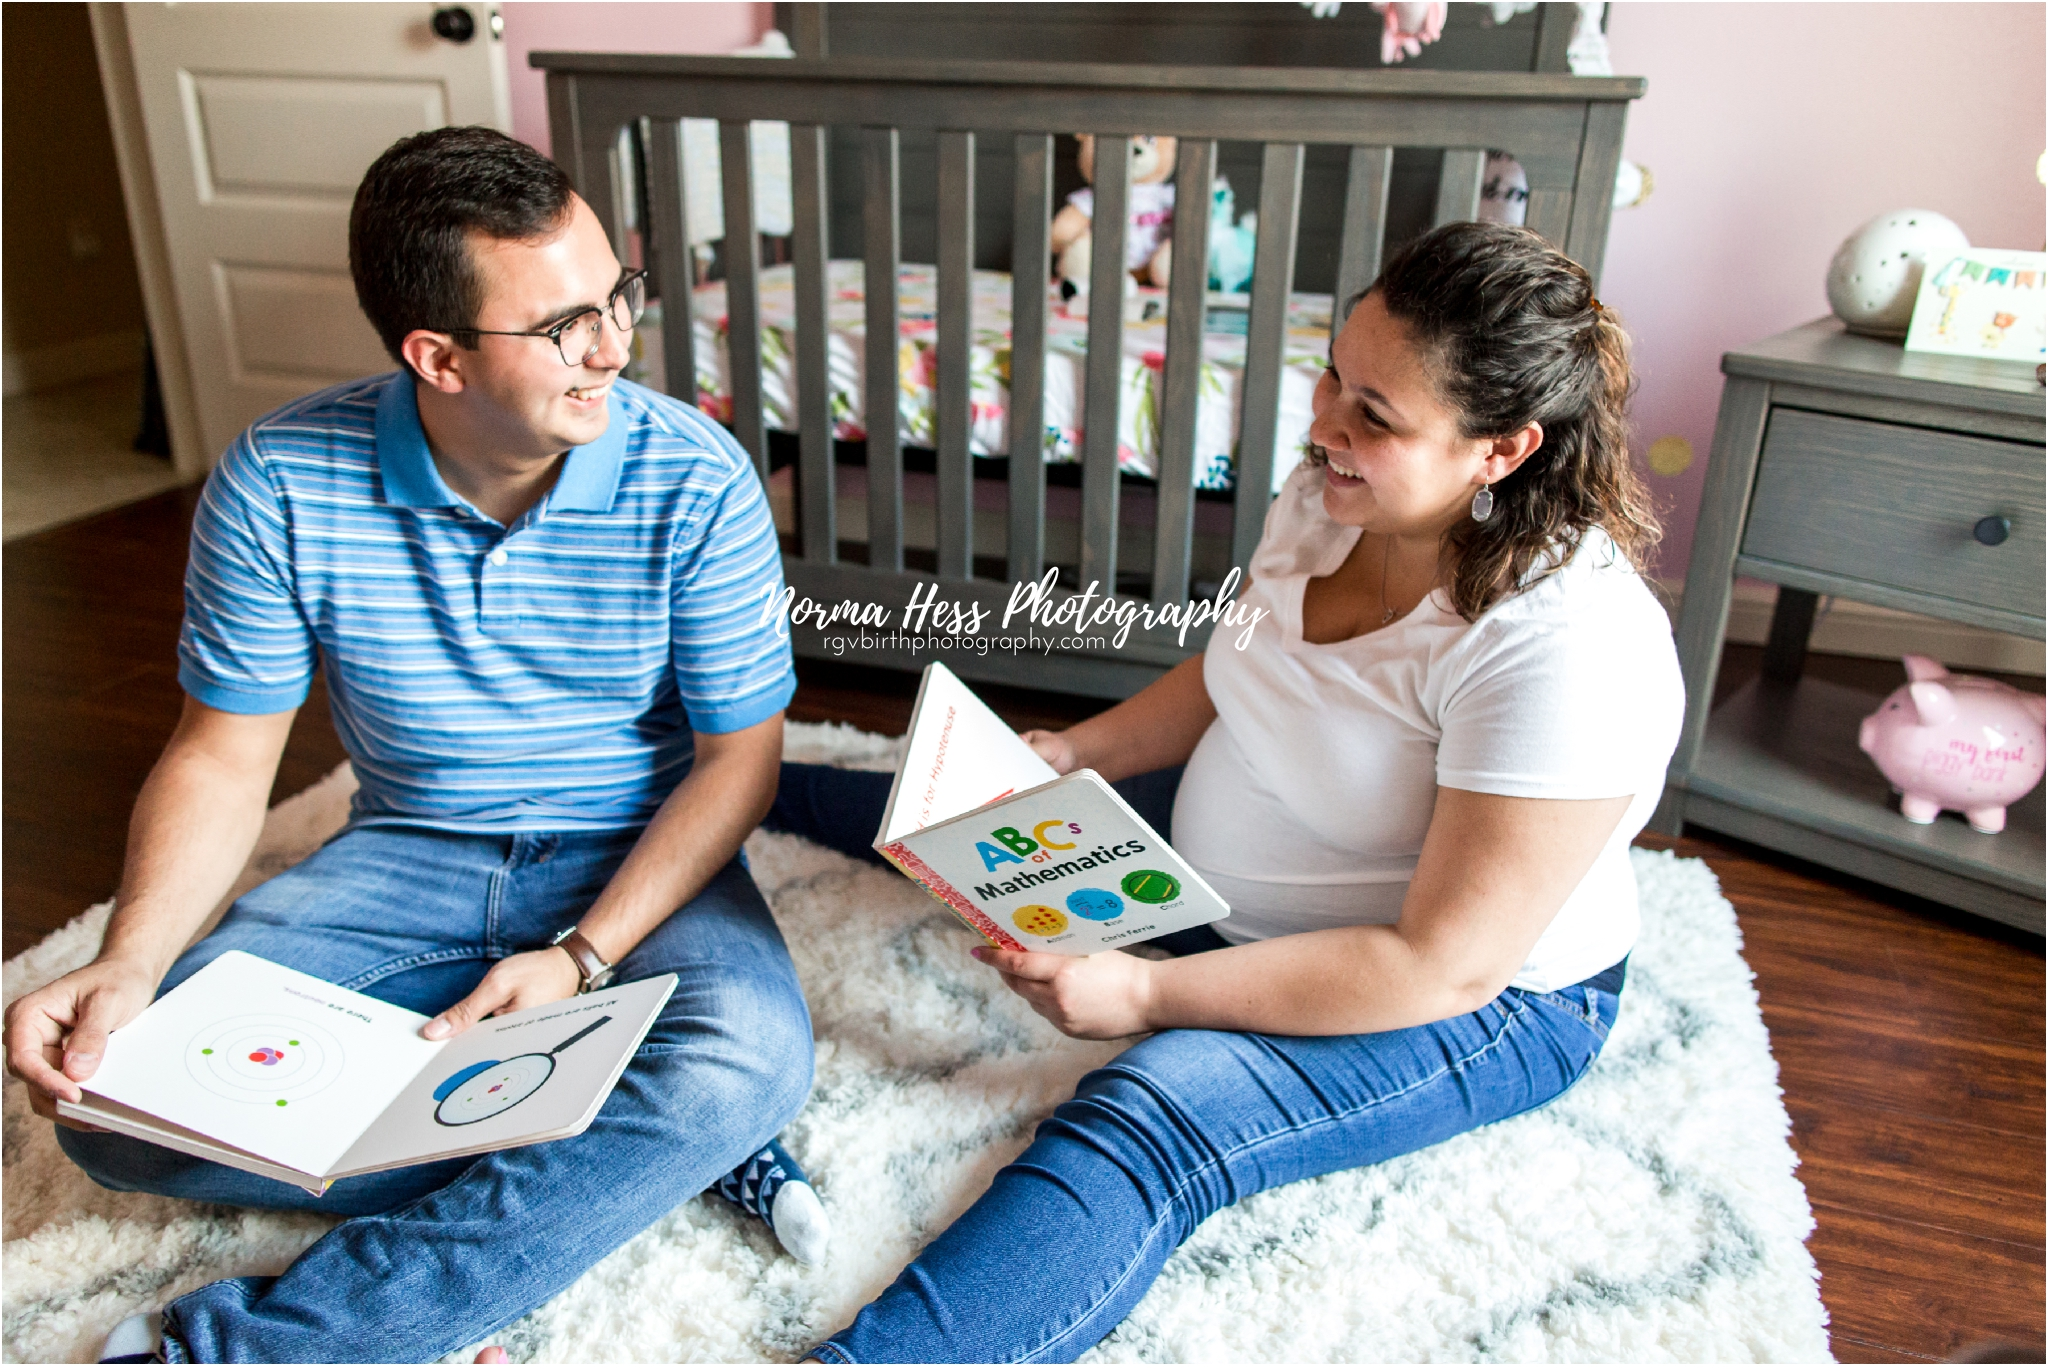 In-home maternity photos by Norma Hess Photography | Document your family's love story today | Serving McAllen, Texas and surrounding areas.